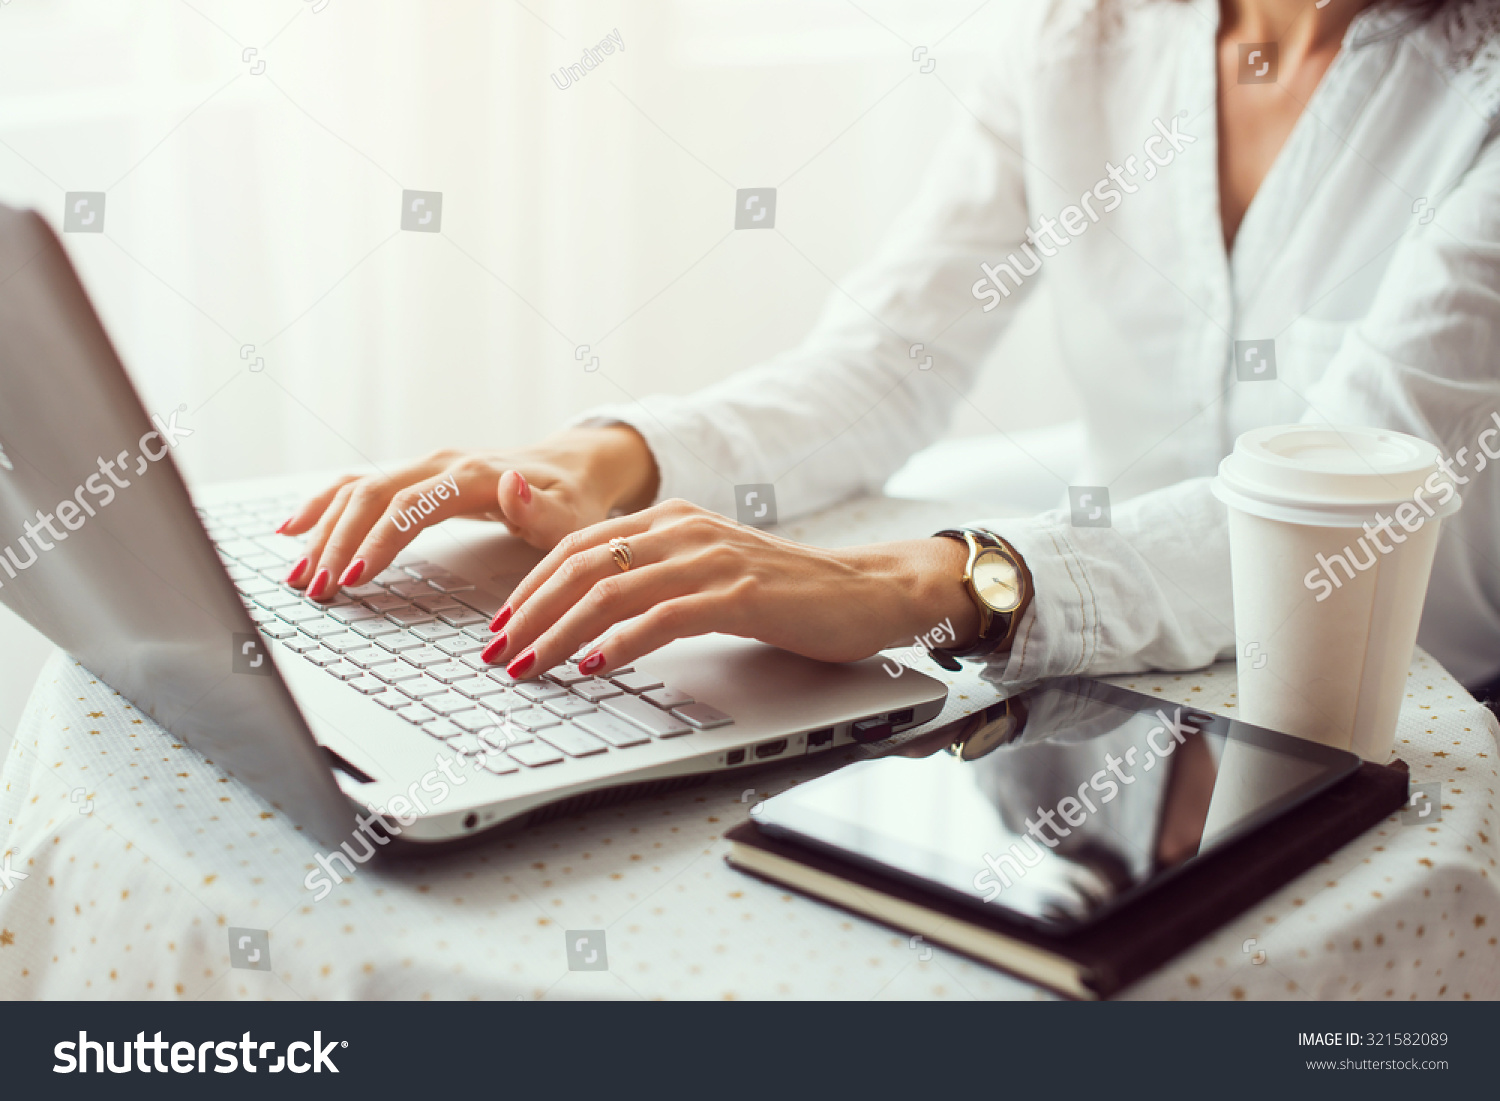 woman working in home office hand on keyboard close up - Working In Home Office